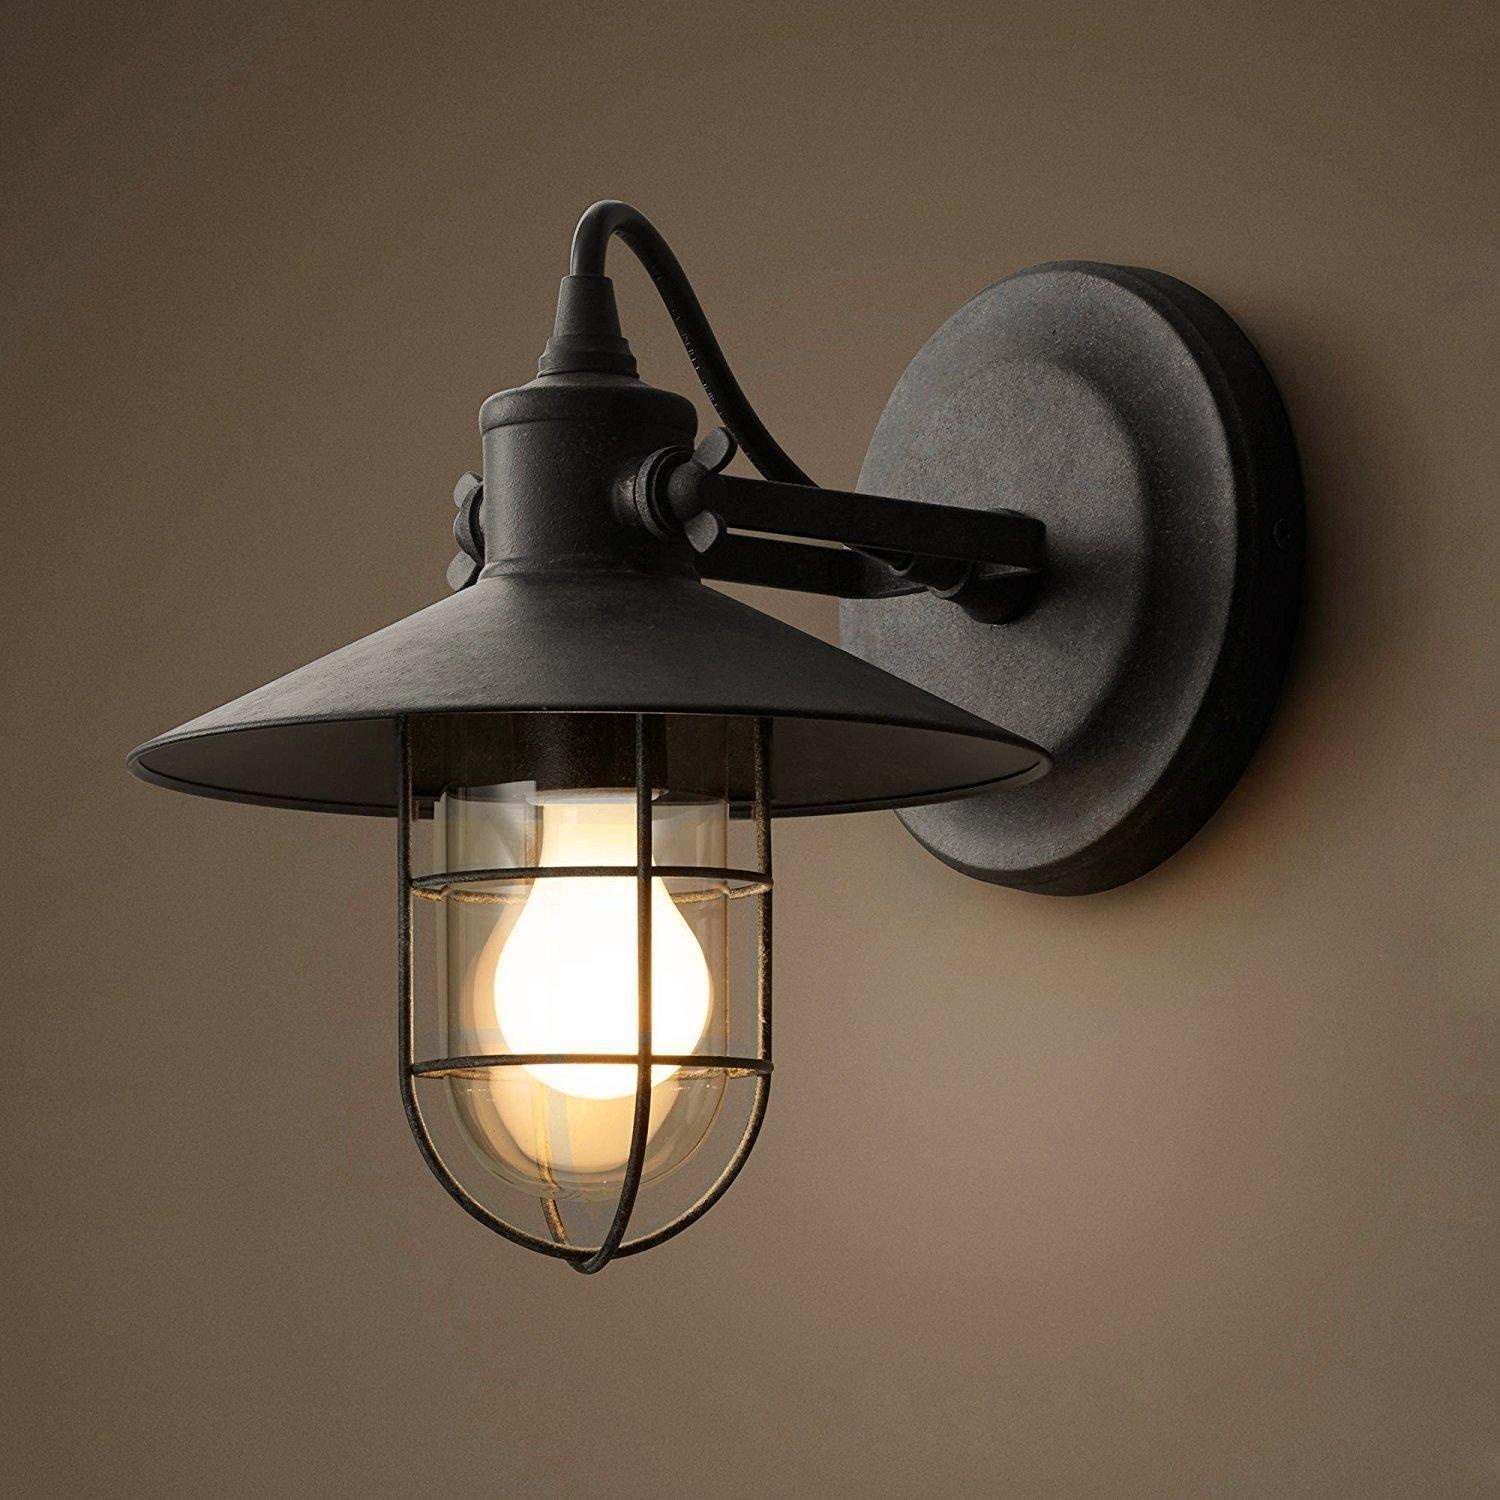 Image of: Cage Wall Sconce Ideas